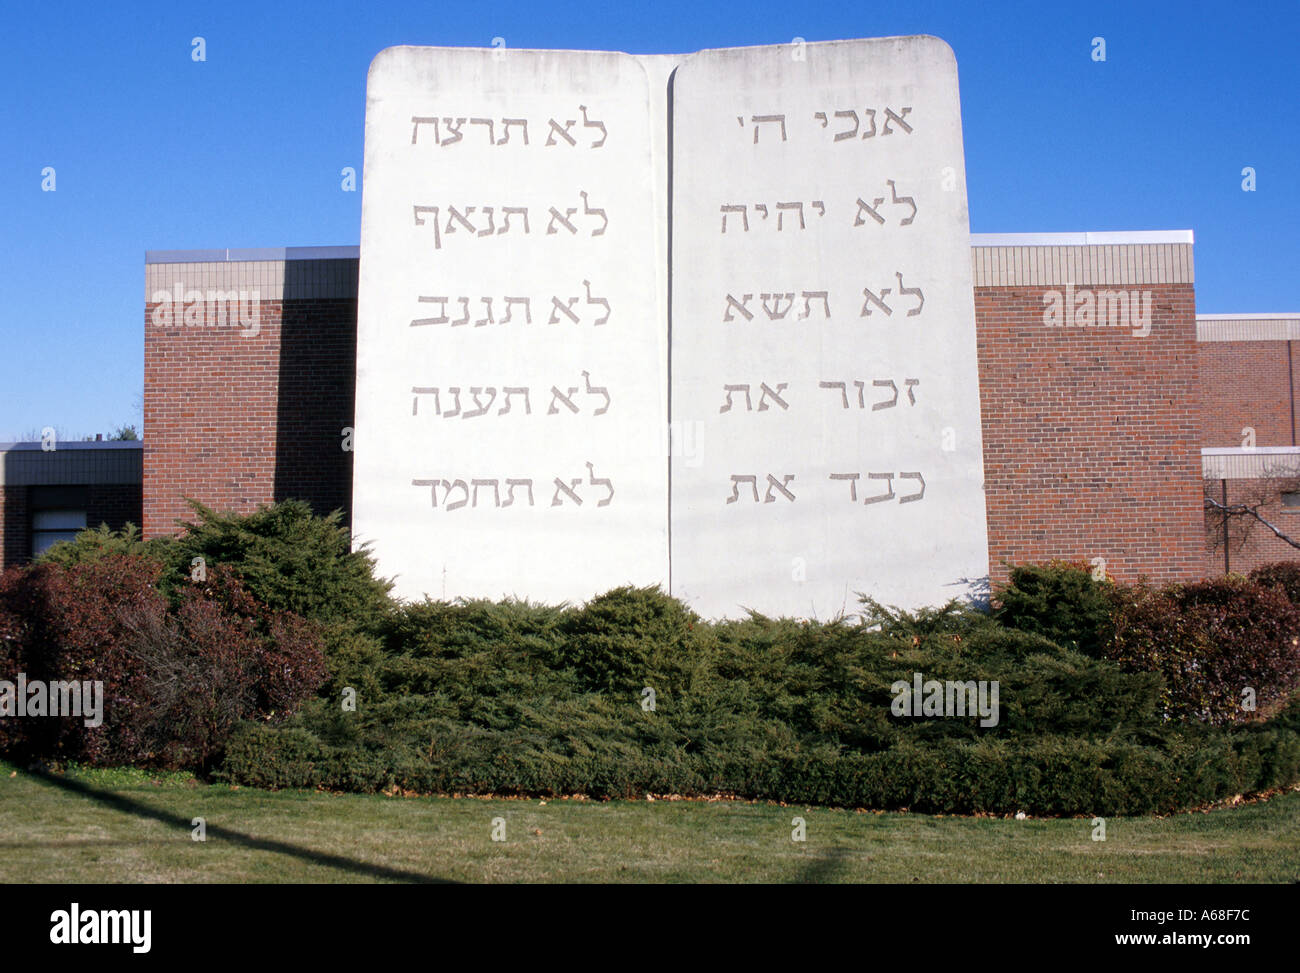 The Ten Commandments in Hebrew letters on a Randolph Massachusetts synagogue - Stock Image